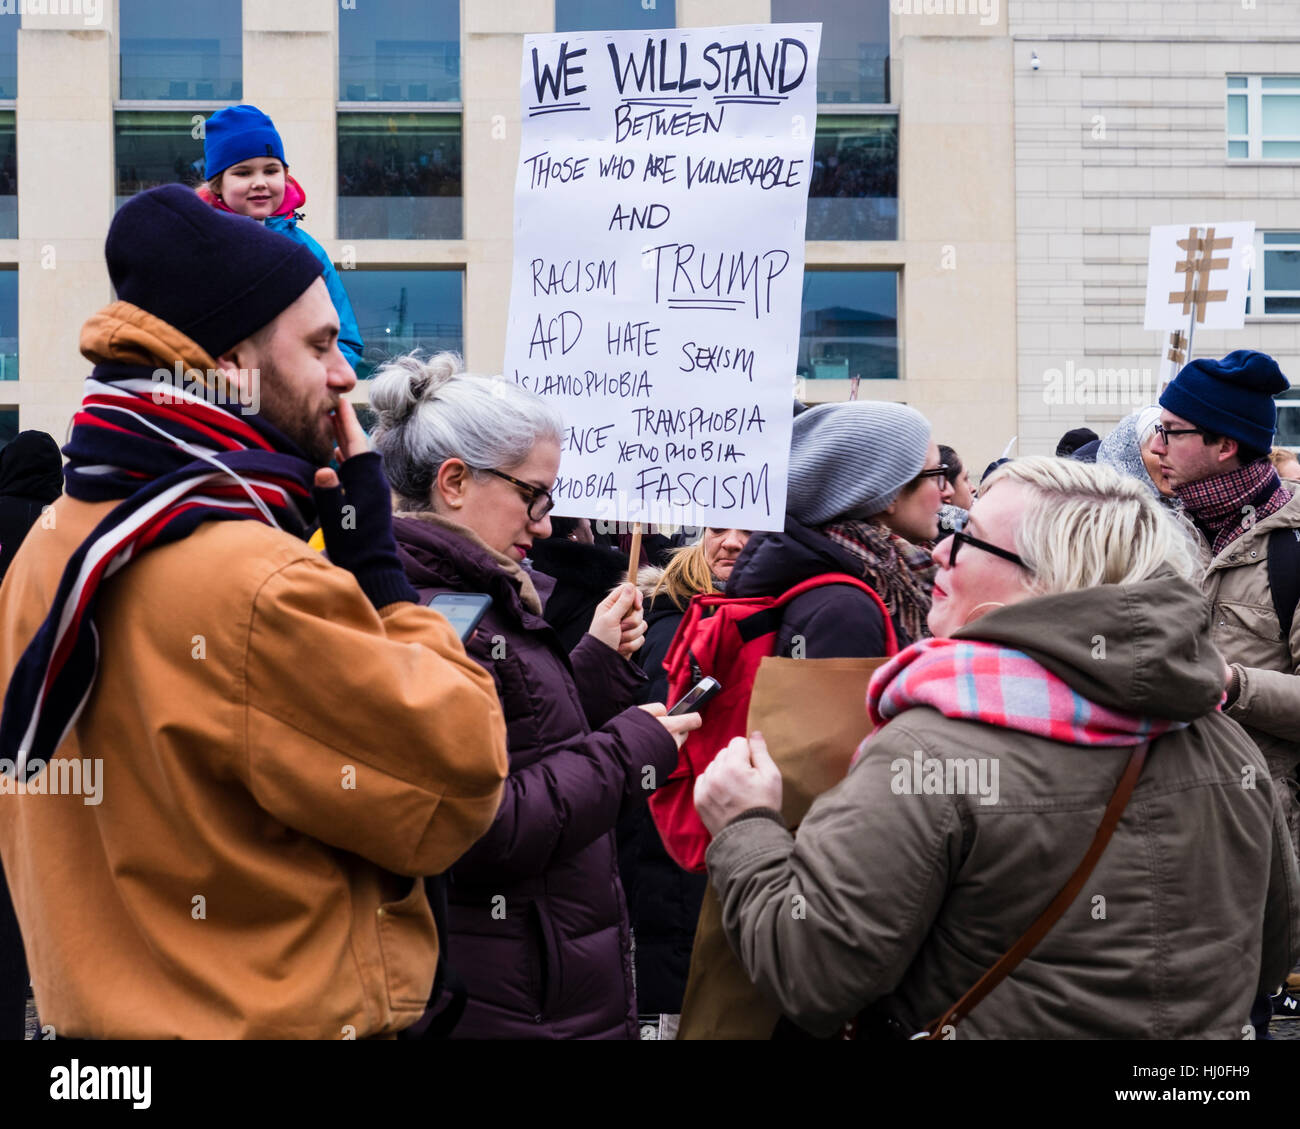 Berlin, Germany, 21st January 2017. Women, Men and Children gathered at the Pariser Platz outside the US Embassy - Stock Image